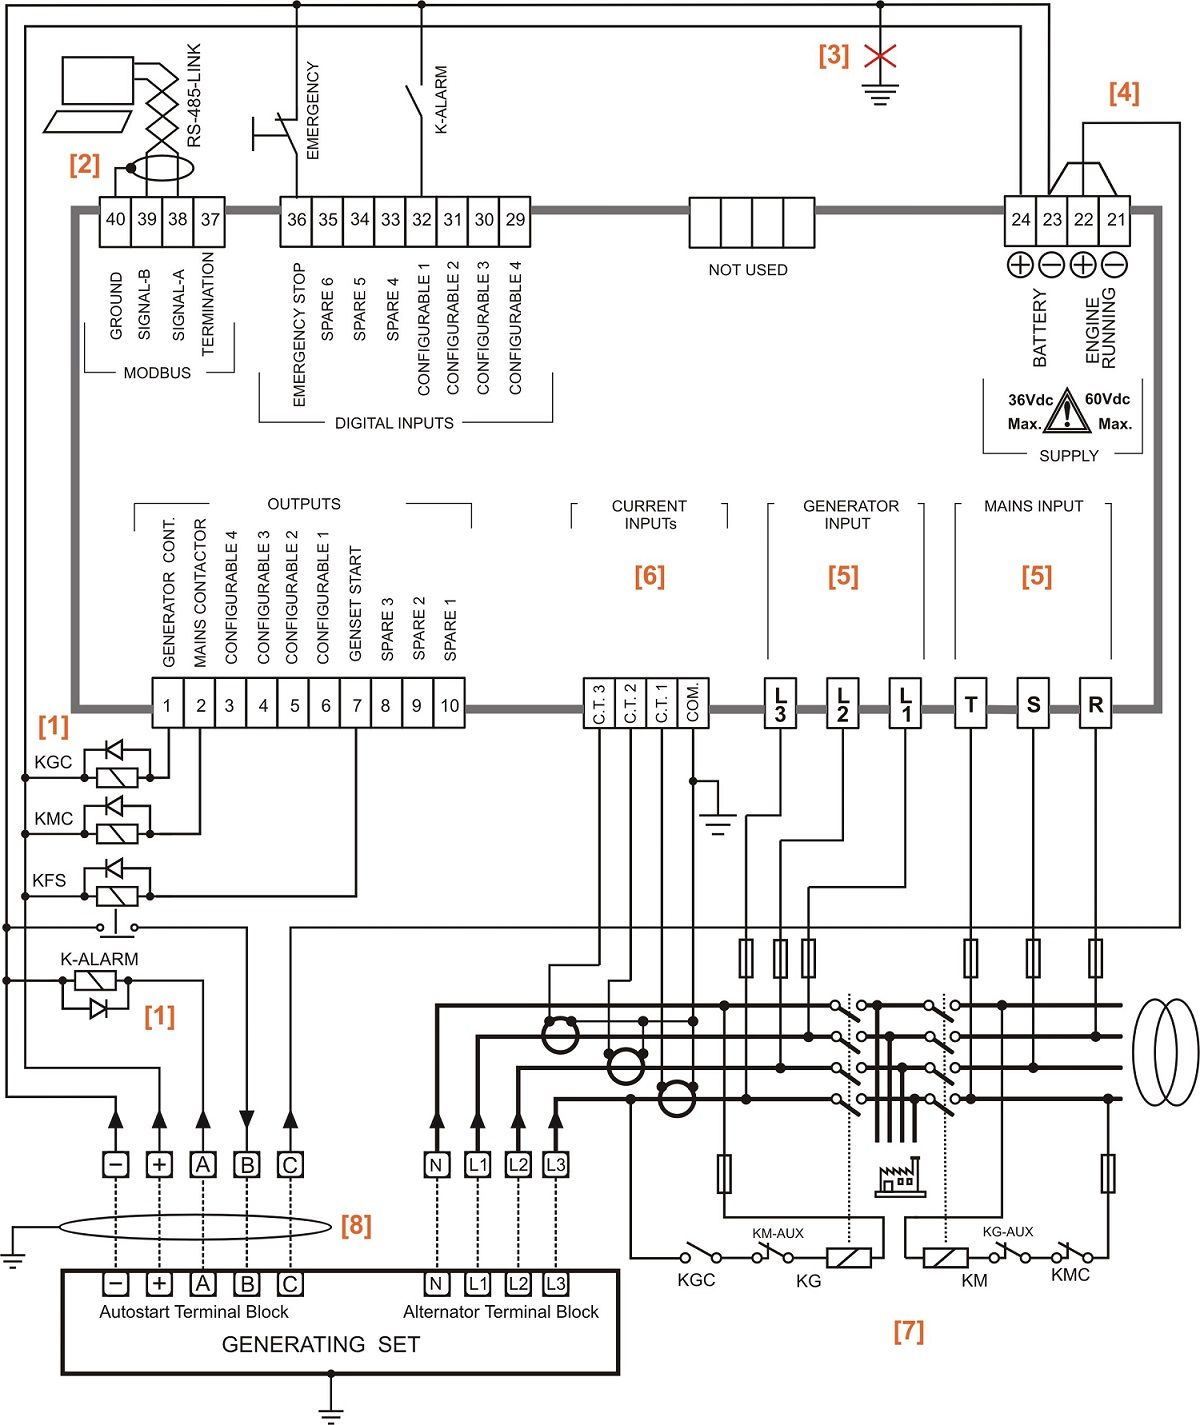 Alternator Terminal Block And Engine Running For Onan Generator Wiring Schematic Wiring Diagr Esquemas Electricos Diagrama De Instalacion Electrica Electrica